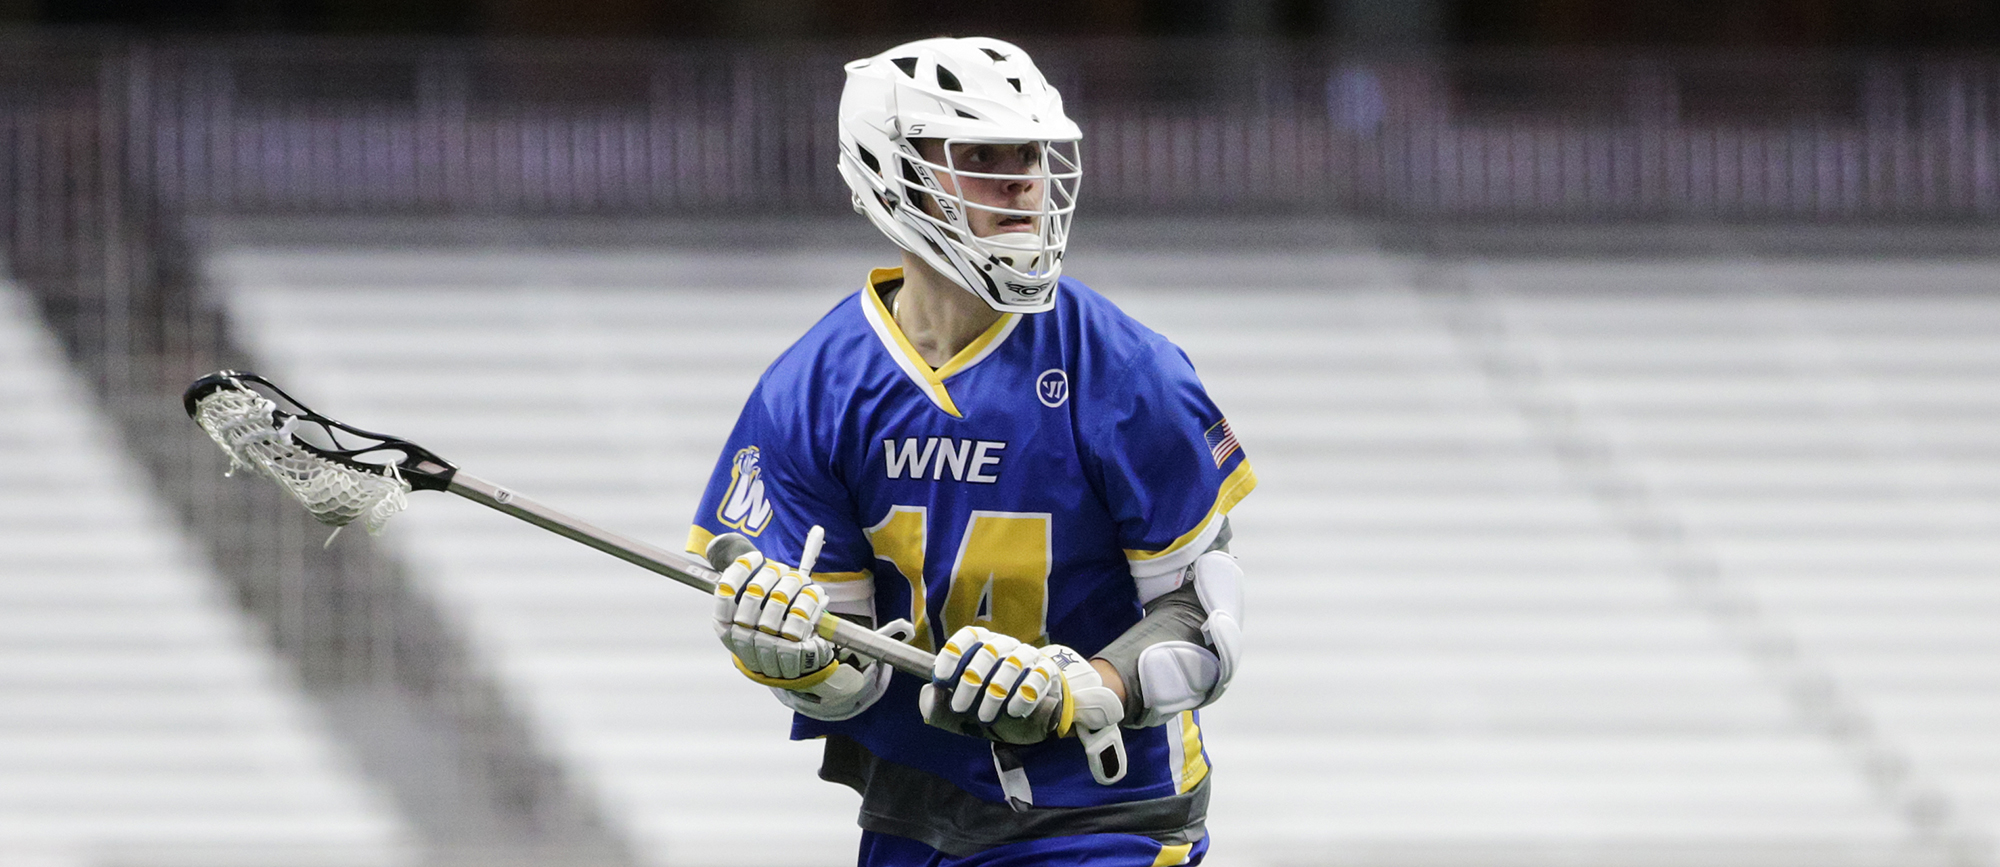 Sophomore Nick Gamba recorded three points in Western New England's 13-5 loss to St. Lawrence at Norfolk Academy on Thursday. (Photo by Chris Cecere)